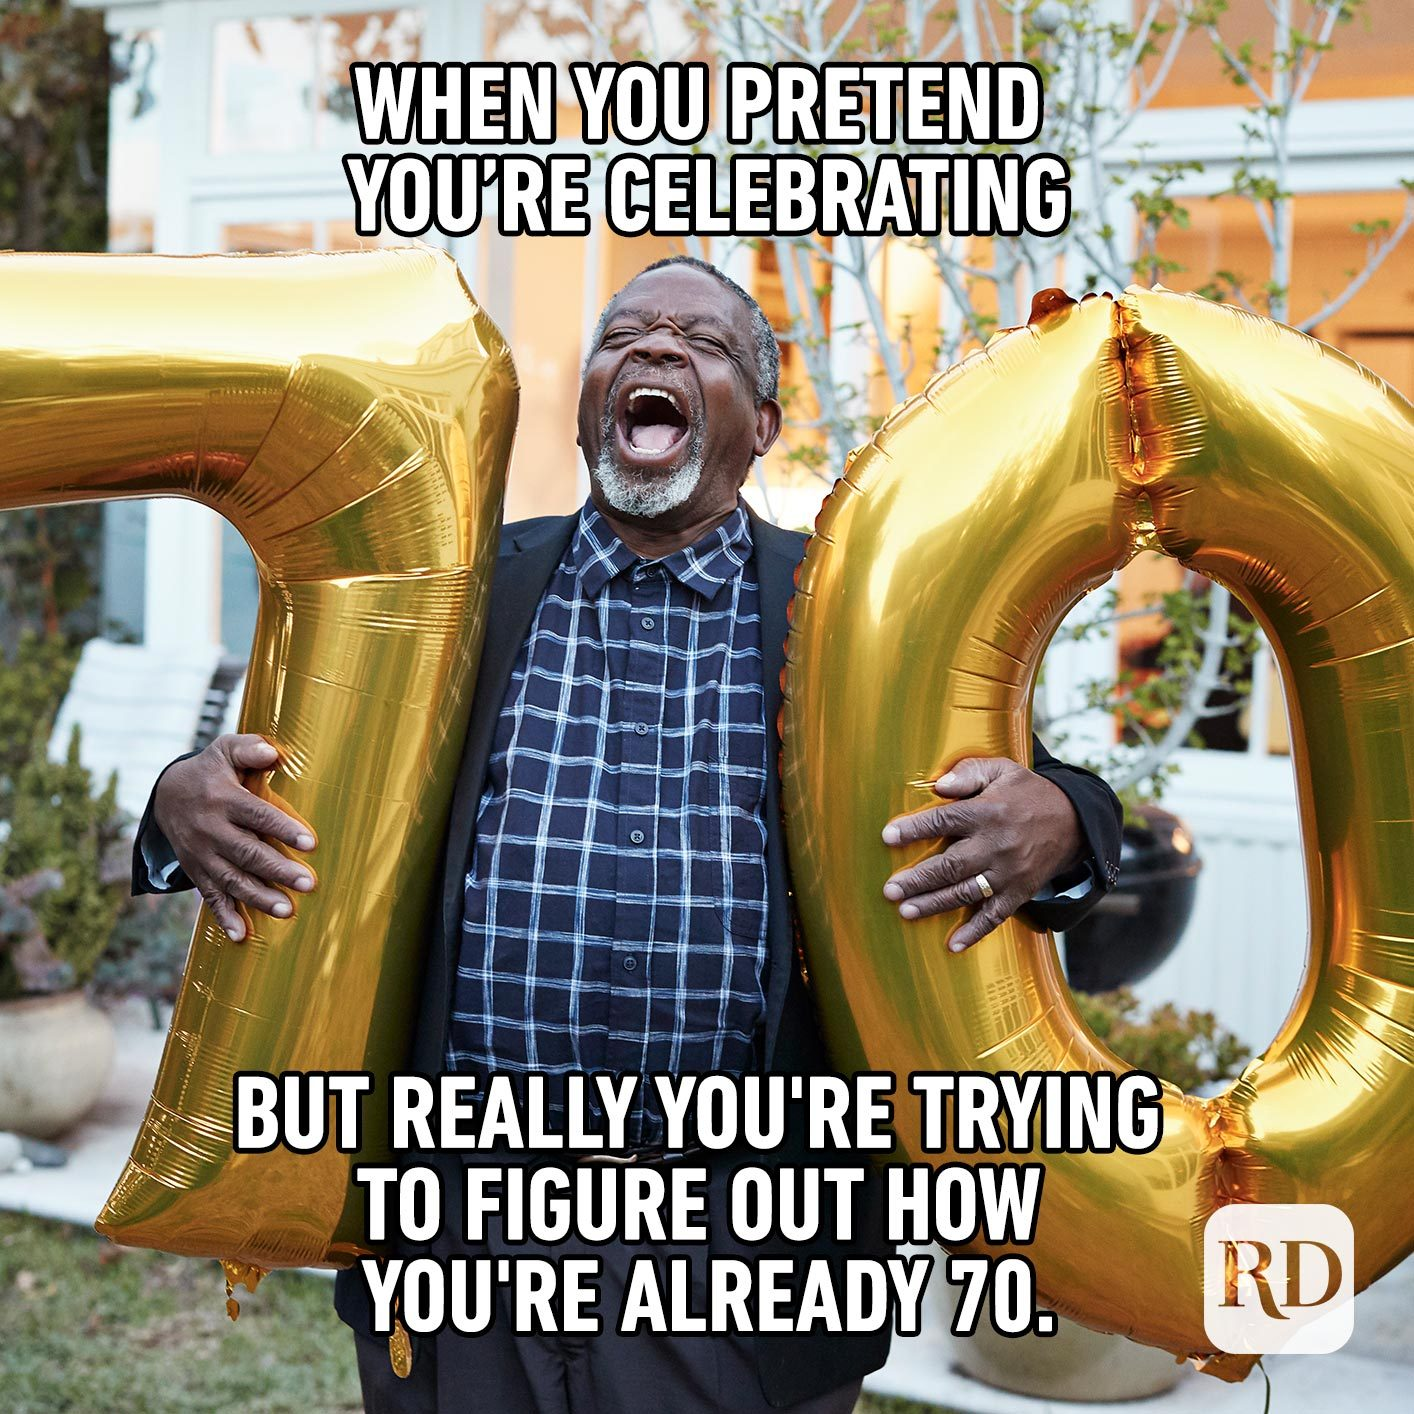 When you pretend you're celebrating, but really you're trying to figure out how you're already 70.